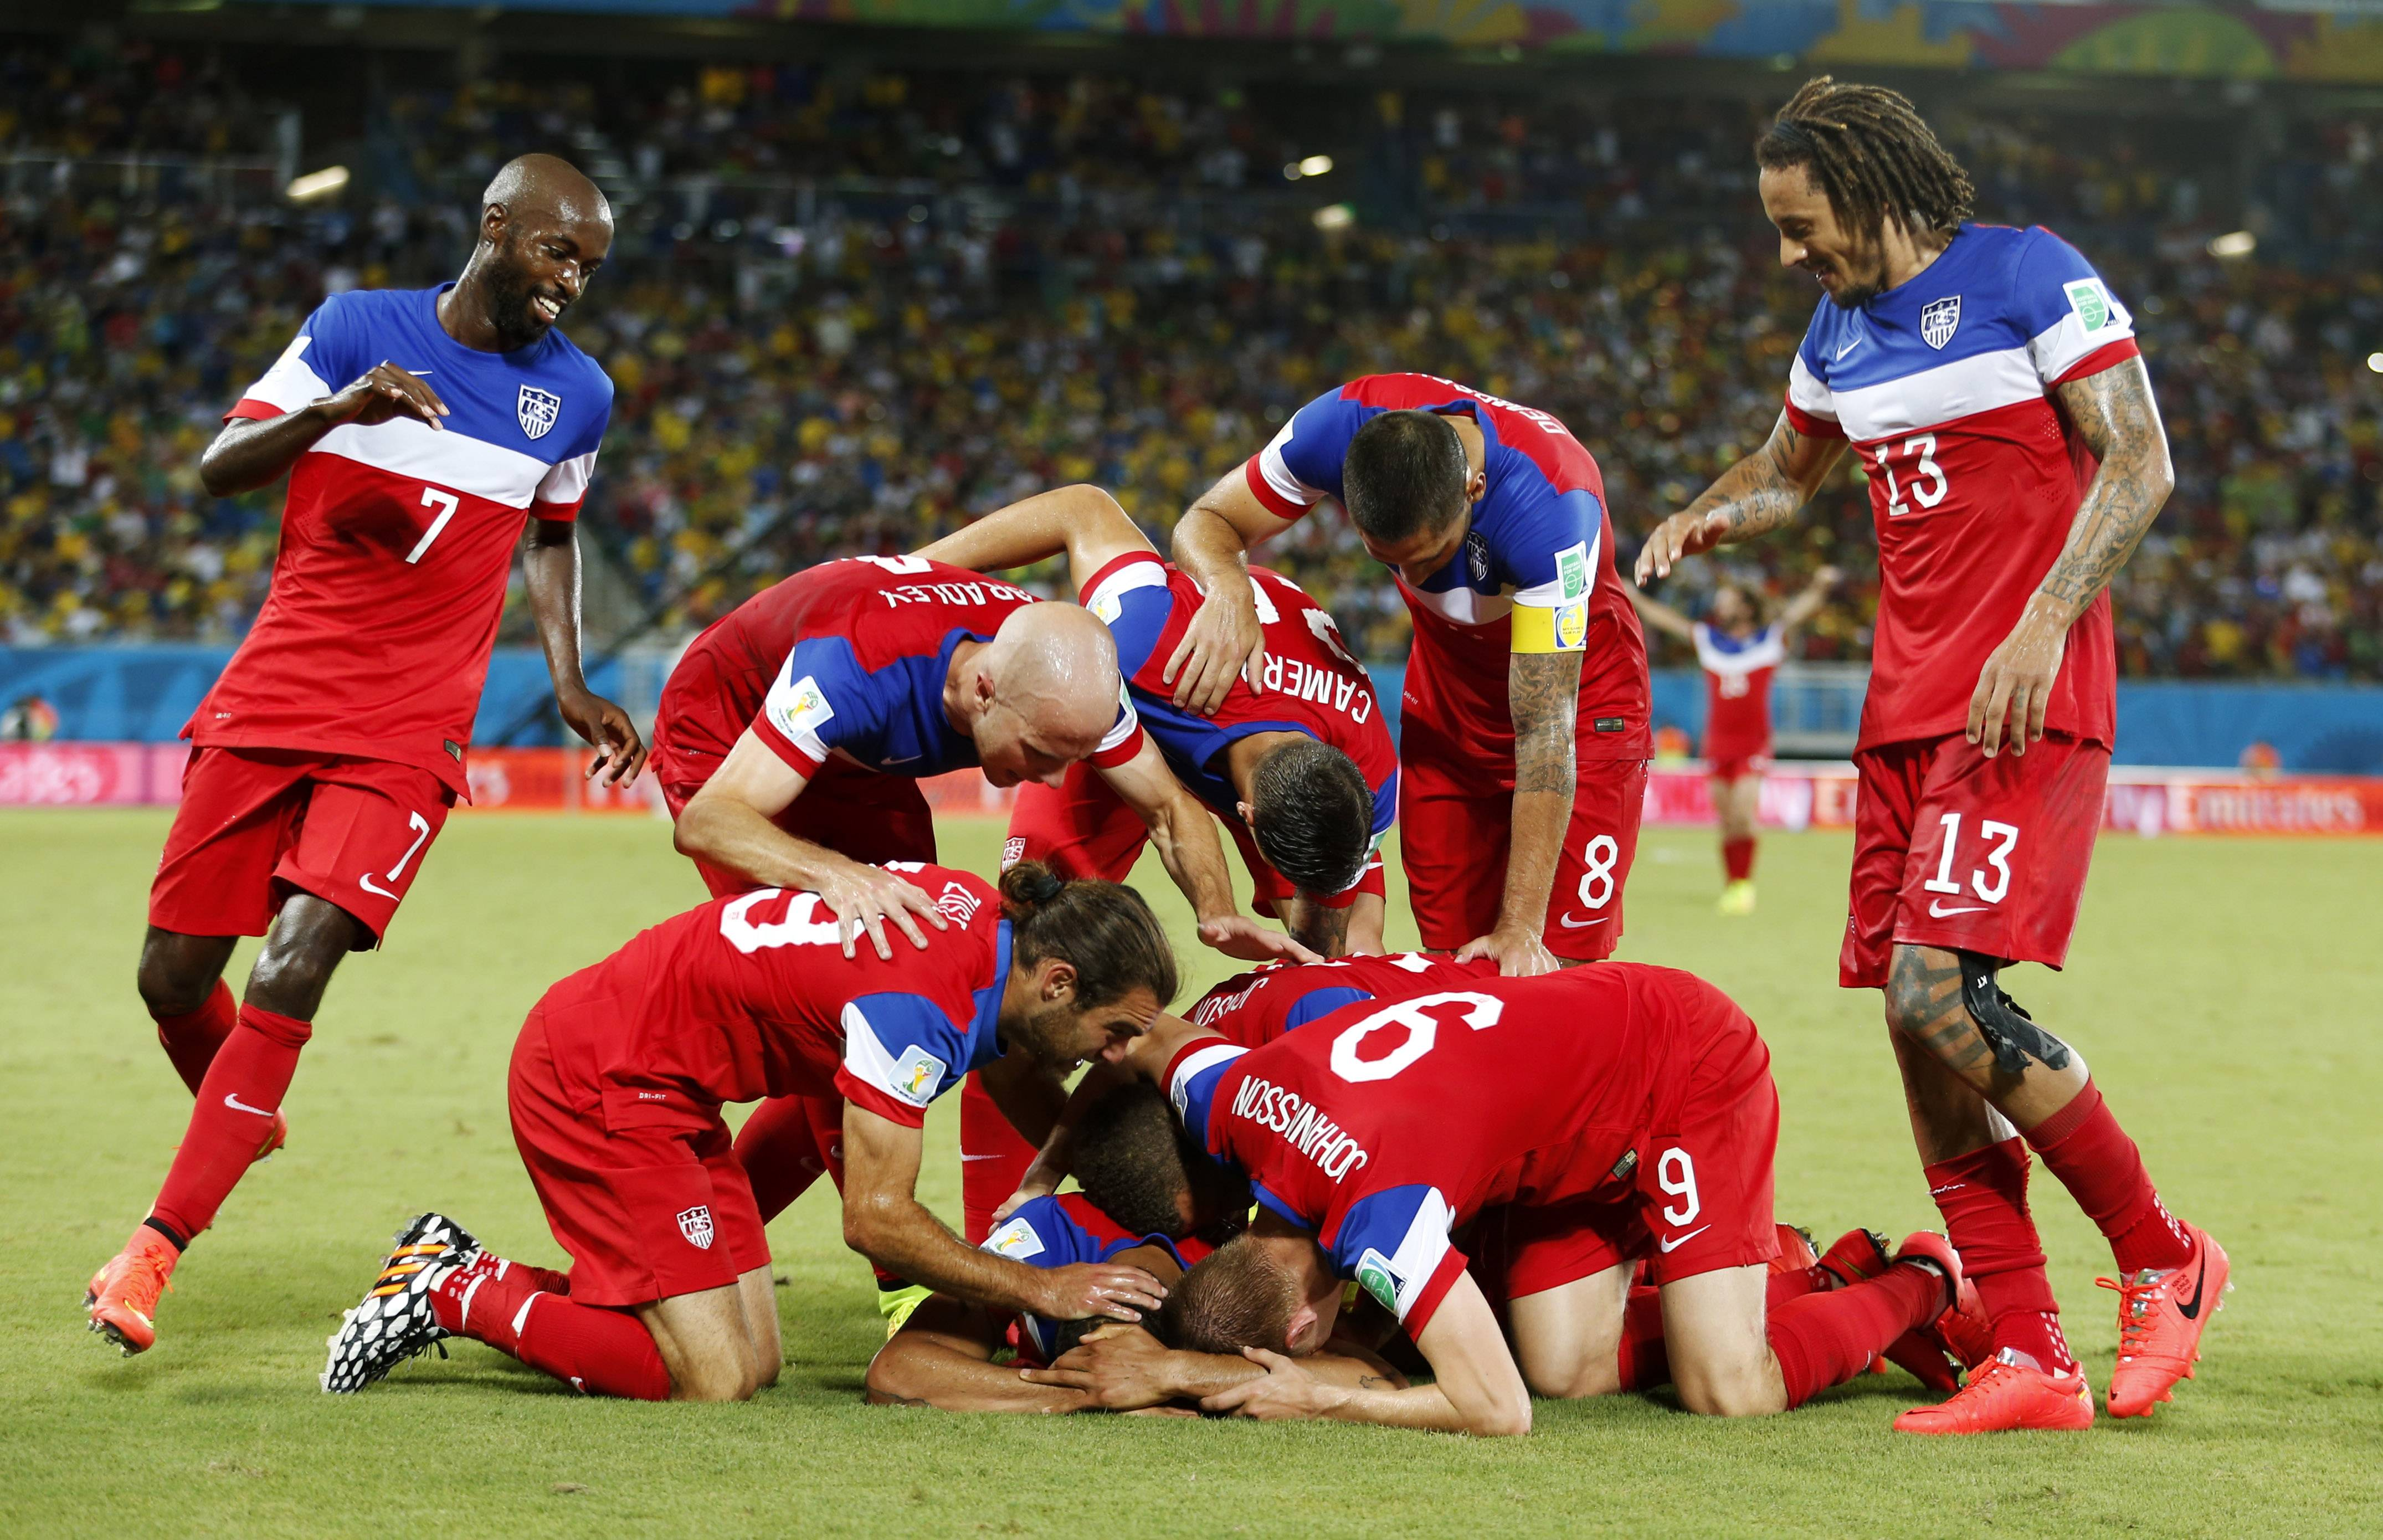 The United States team surrounds John Brooks after he scored his side's second goal to defeat Ghana 2-1 during the group G World Cup soccer match between Ghana and the United States at the Arena das Dunas in Natal, Brazil, June 16. The U.S. team is now readying for Tuesday's matchup against Belgium.